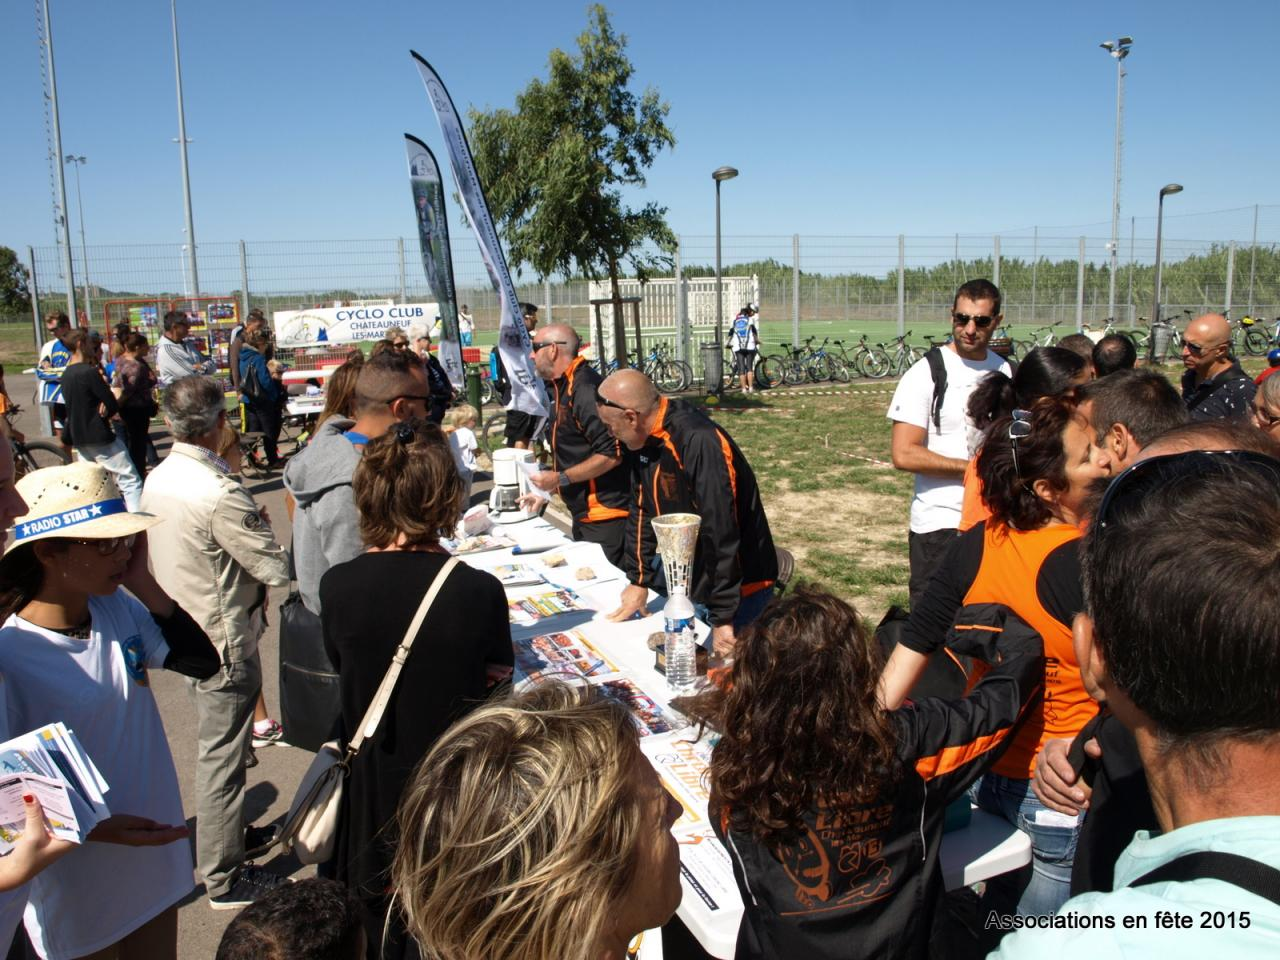 05092015 associations en fete chateauneuf CL (12)